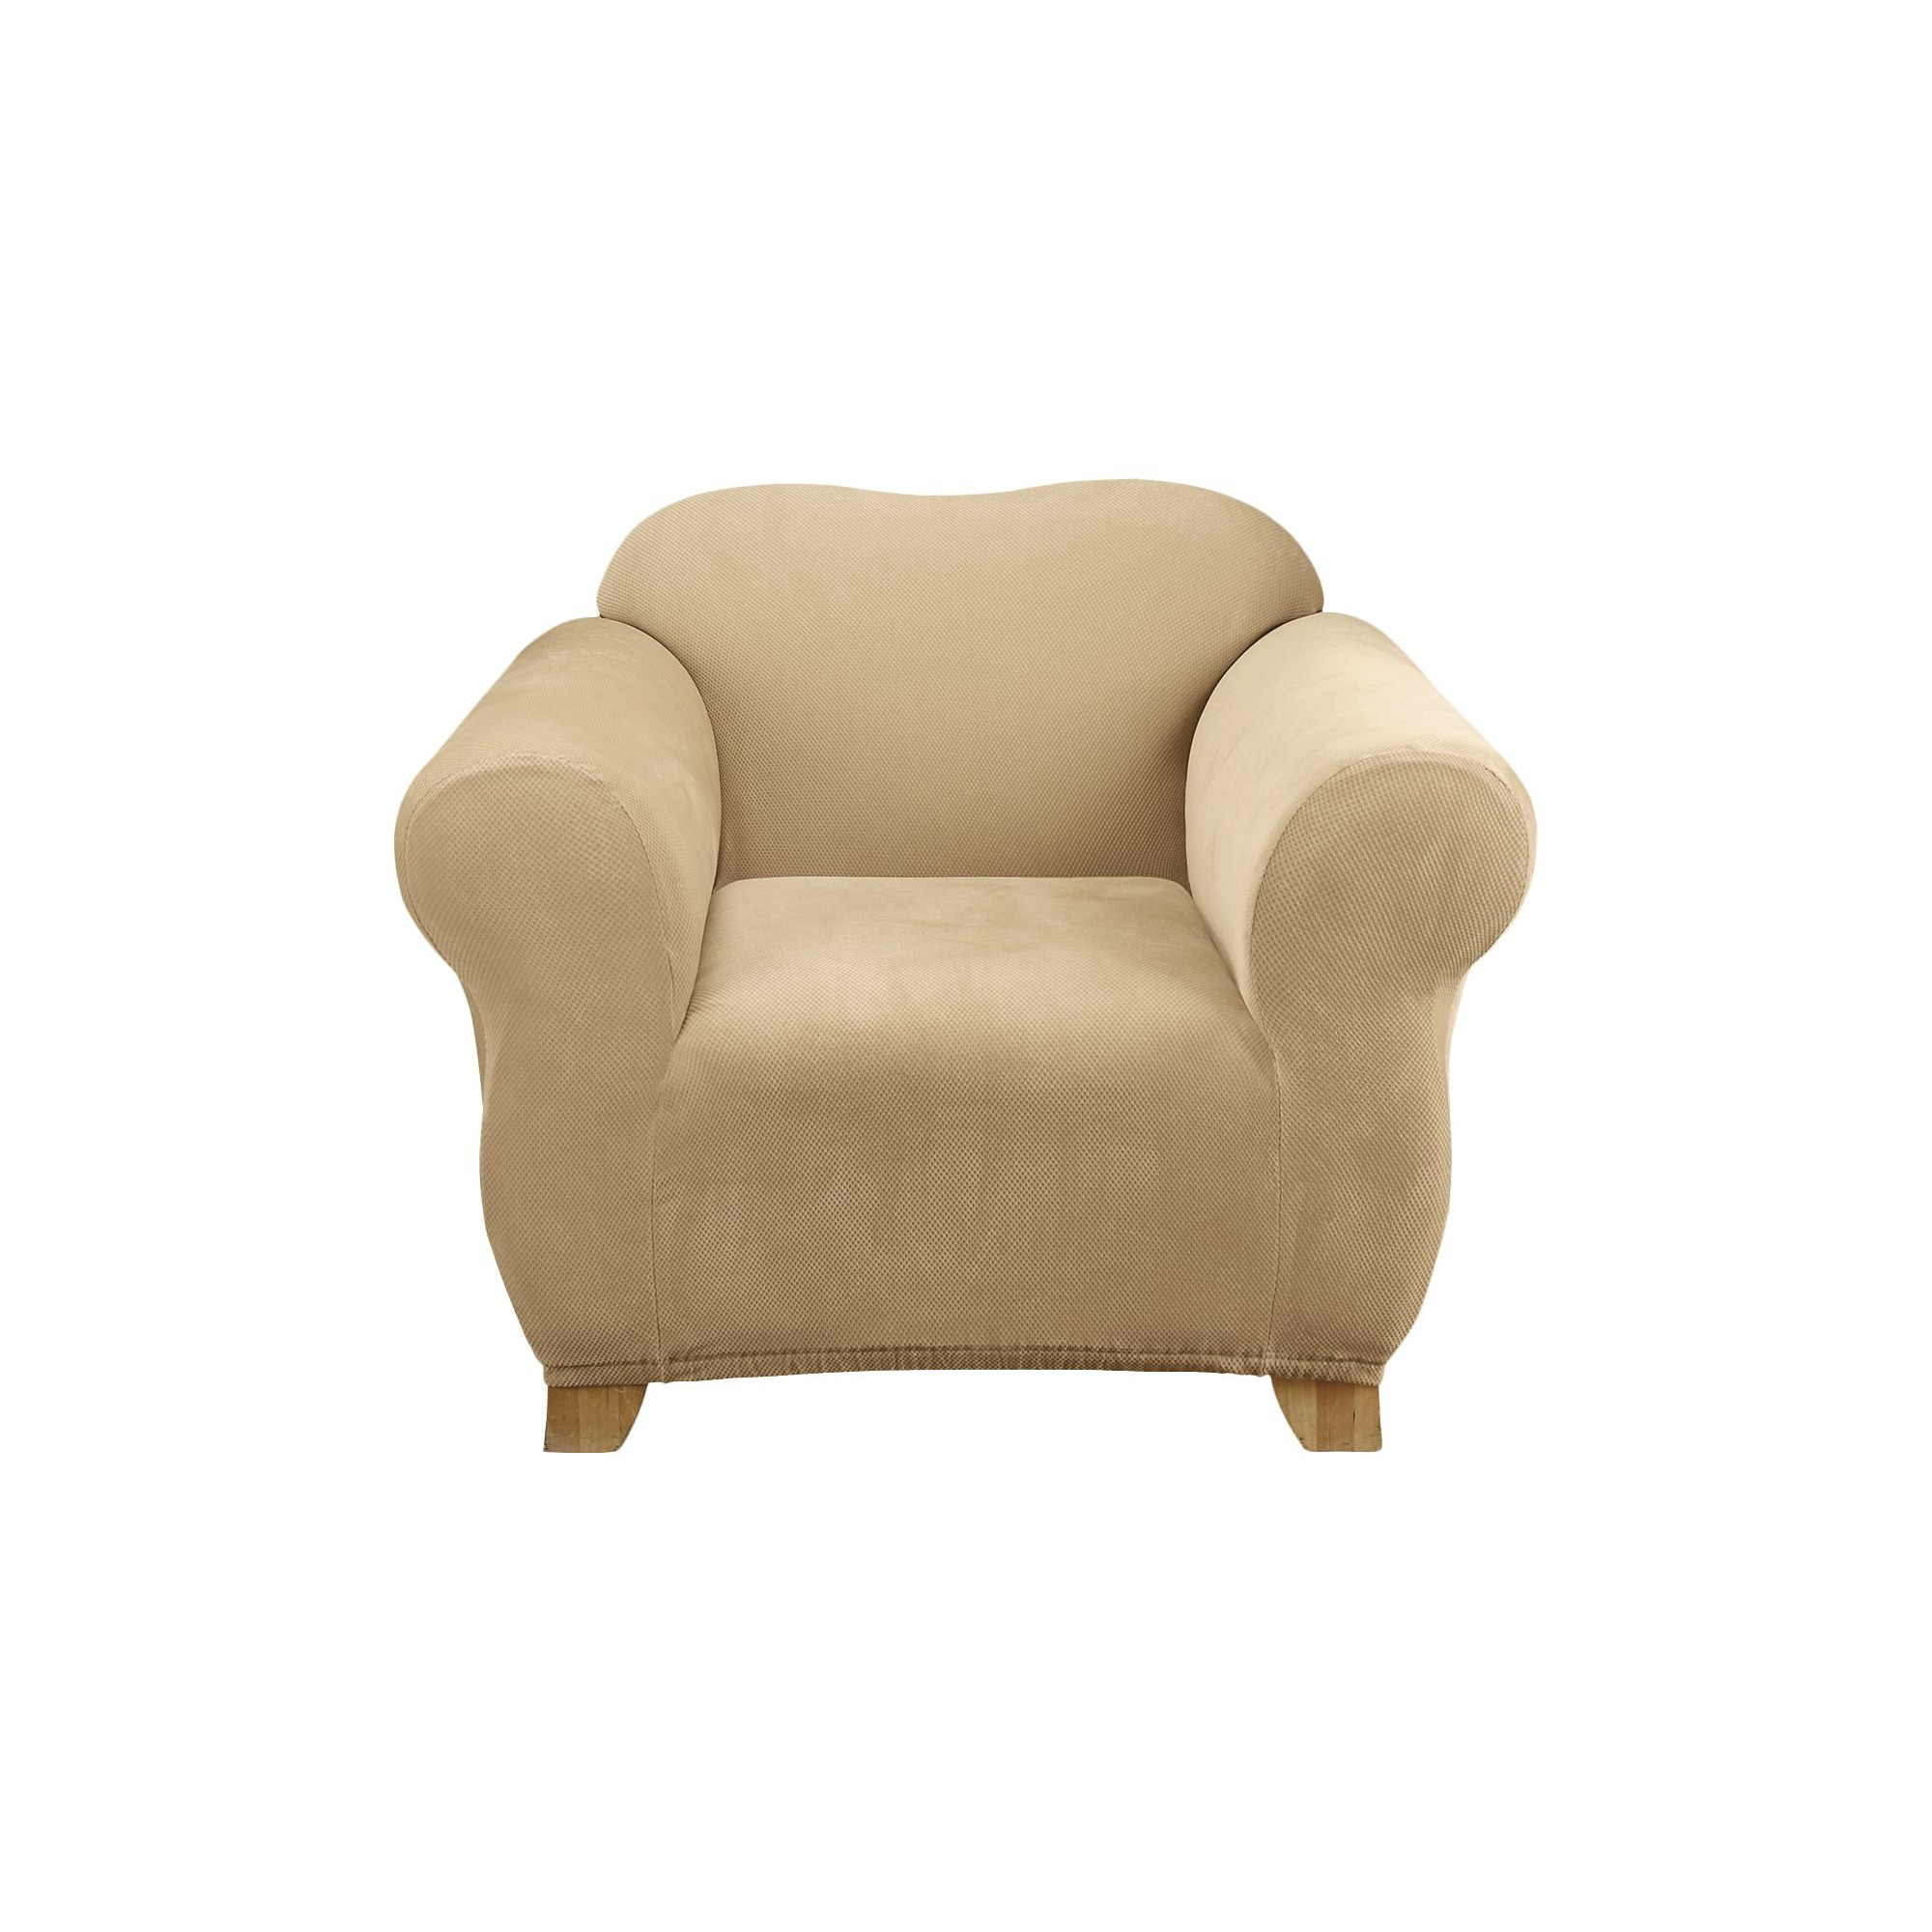 Stretch Pique Chair Slipcover Cream - Sure Fit, Ivory